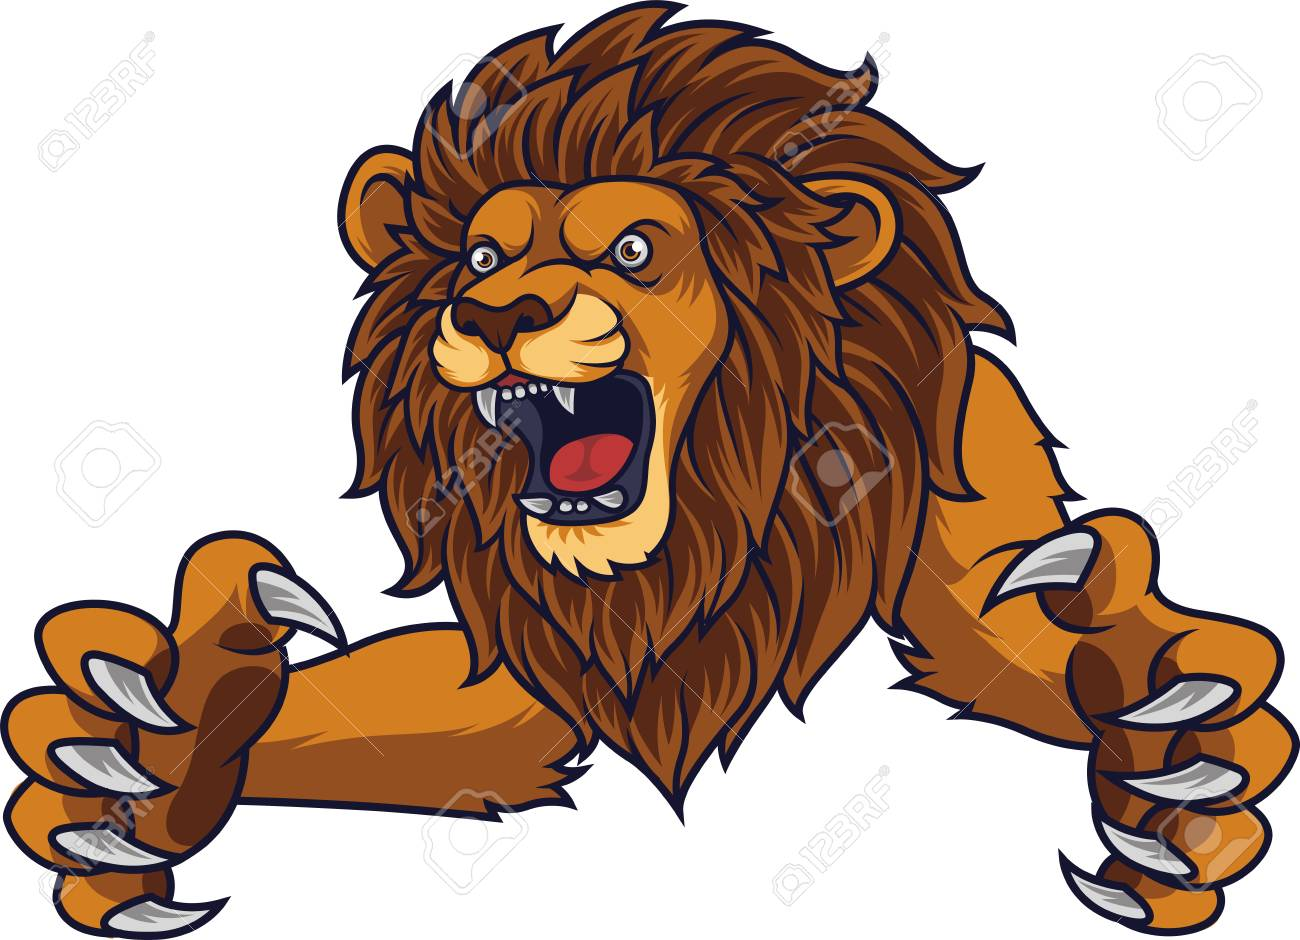 Angry leaping lion - 113935845